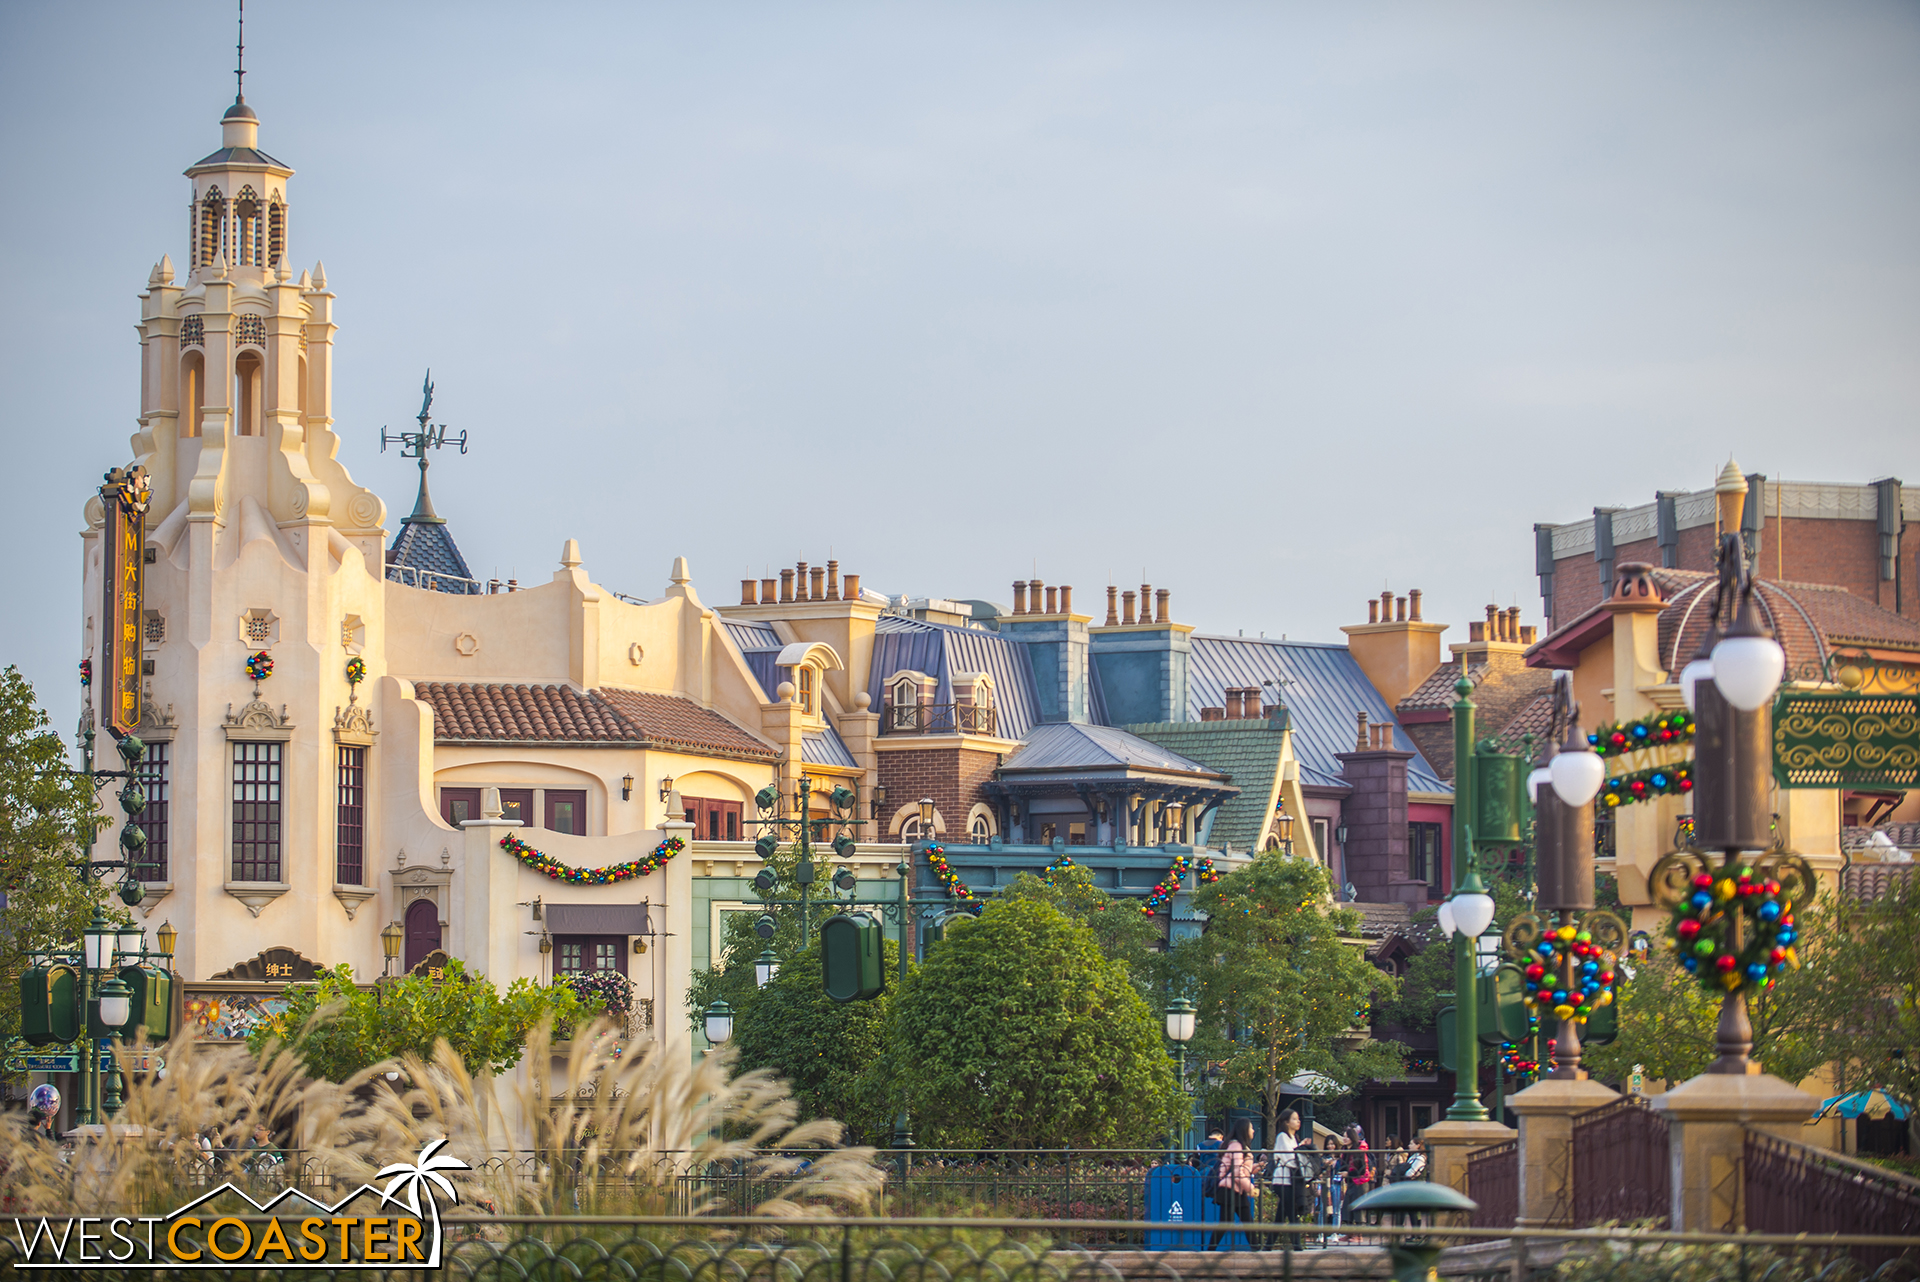 A familiar iconic tower anchors the end of Mickey Avenue, and beside it, the Walt Disney Grand Theatre.